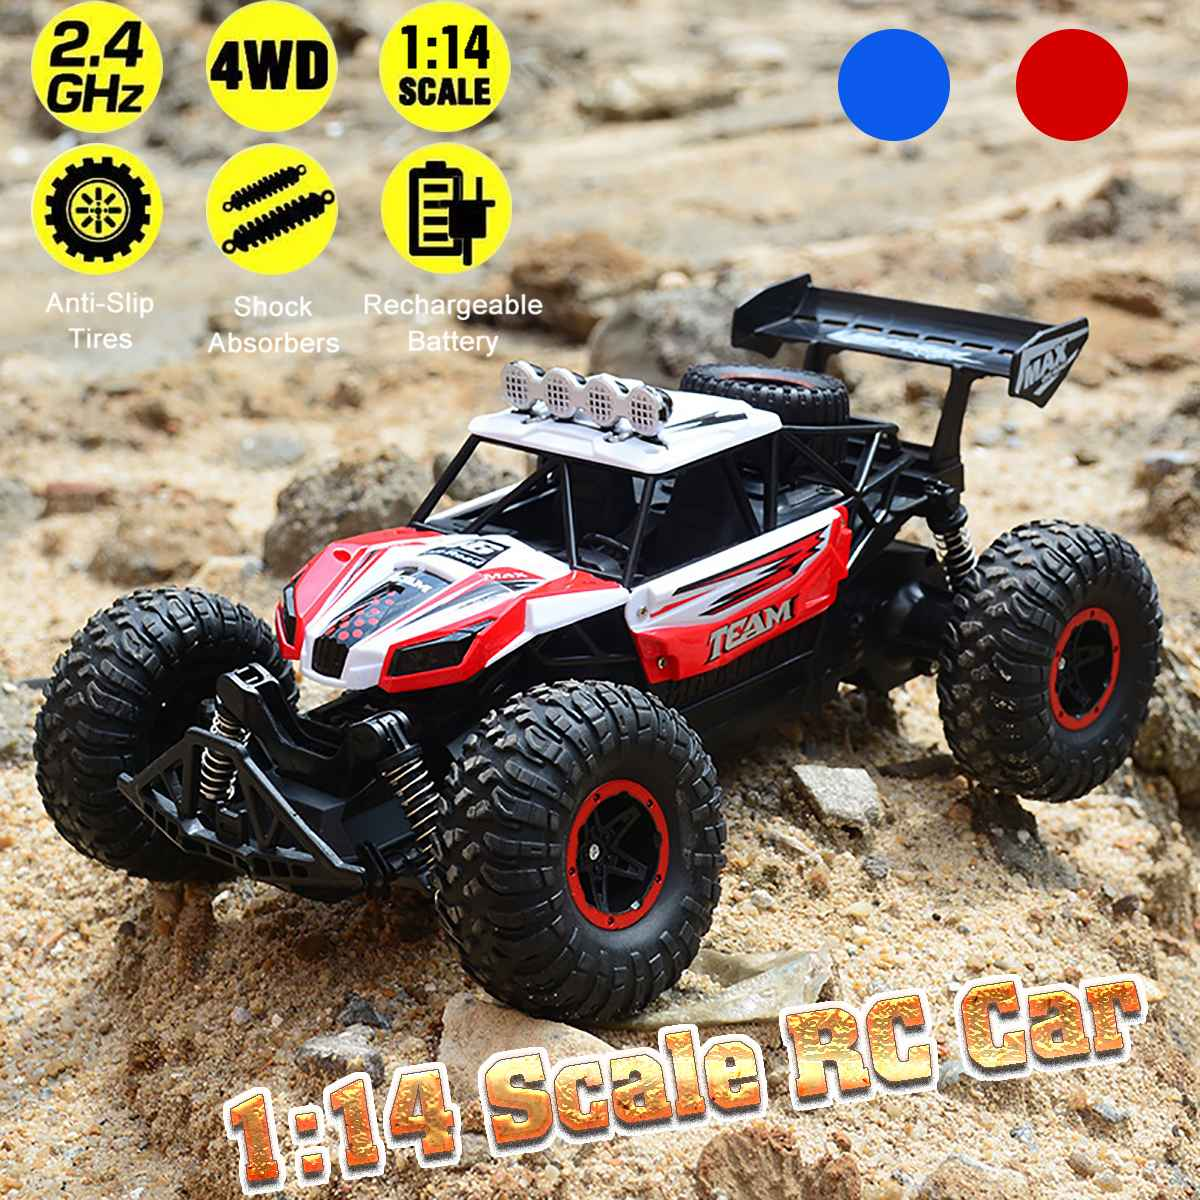 1:14 48KM/H 2.4G Machines Remote Control Model Vehicle Kids Electric RC Car Gift Climbing Big Tire Off Road Truck High Speed